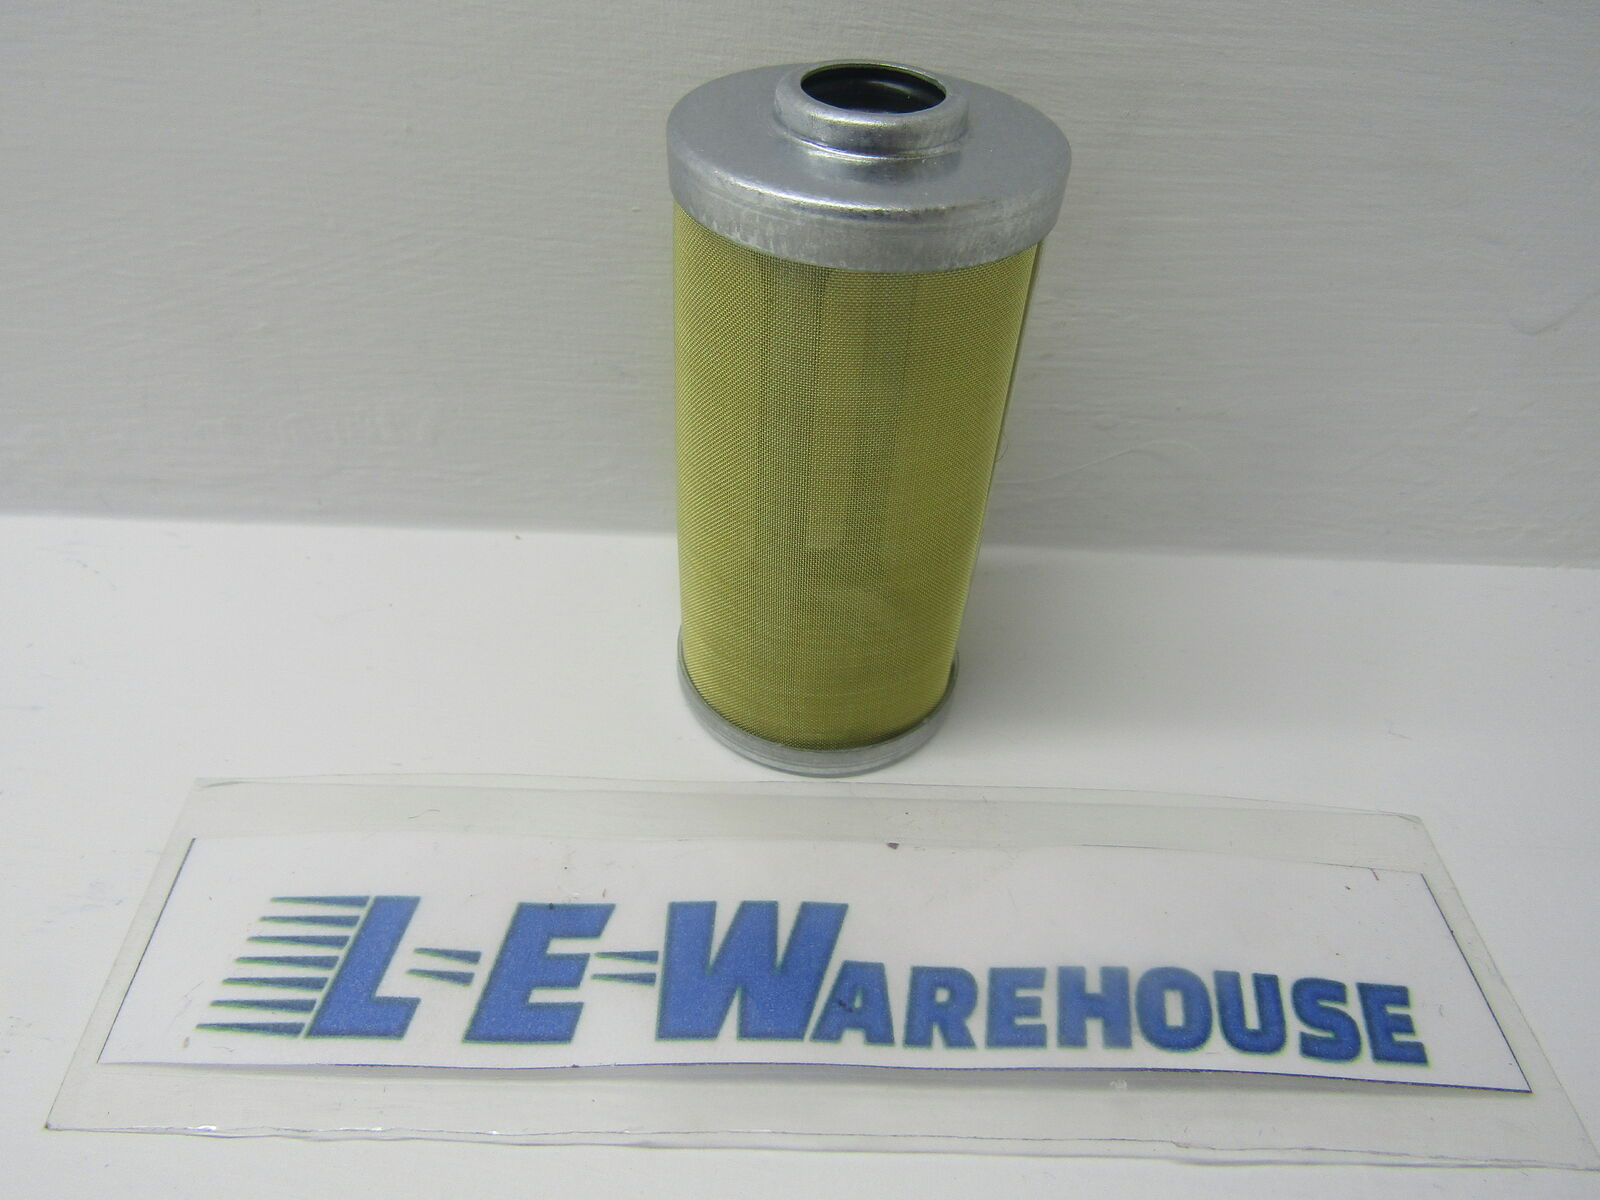 New Genuine Kubota Engine Fuel Filter Part 1g31143380 1g311 43380 Filters 1 Of 4only 2 Available